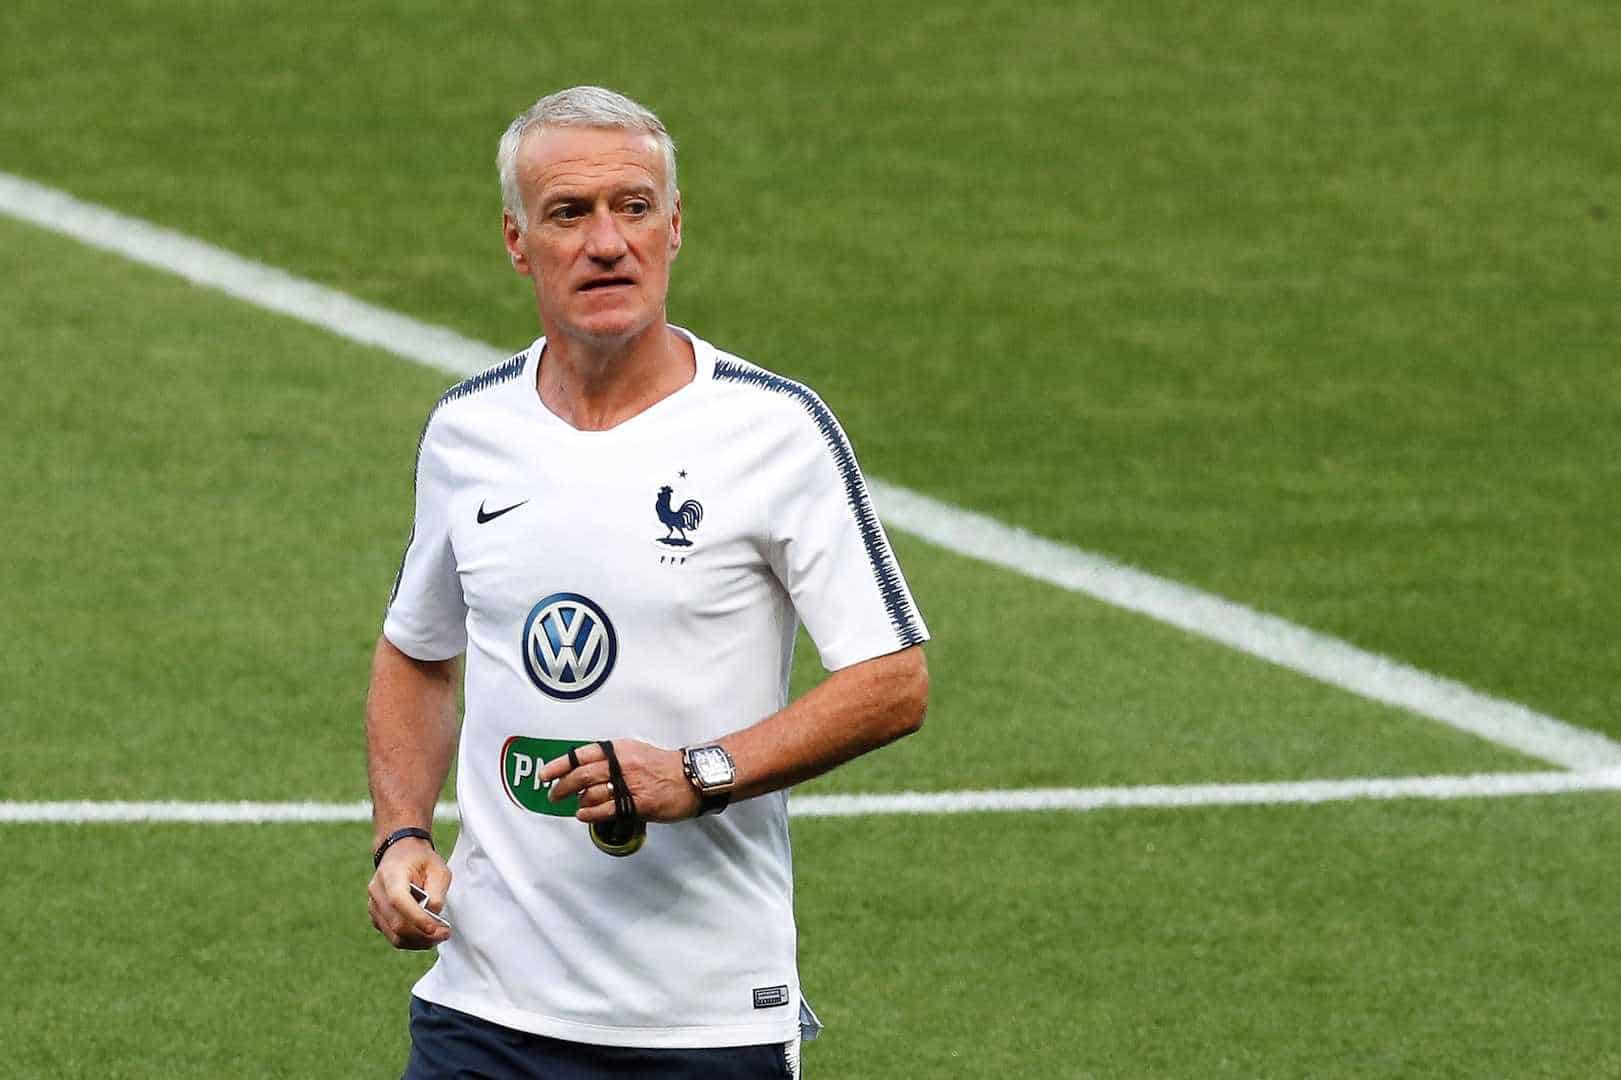 Zidane descartado de Francia; ratifican a Didier Deschamps